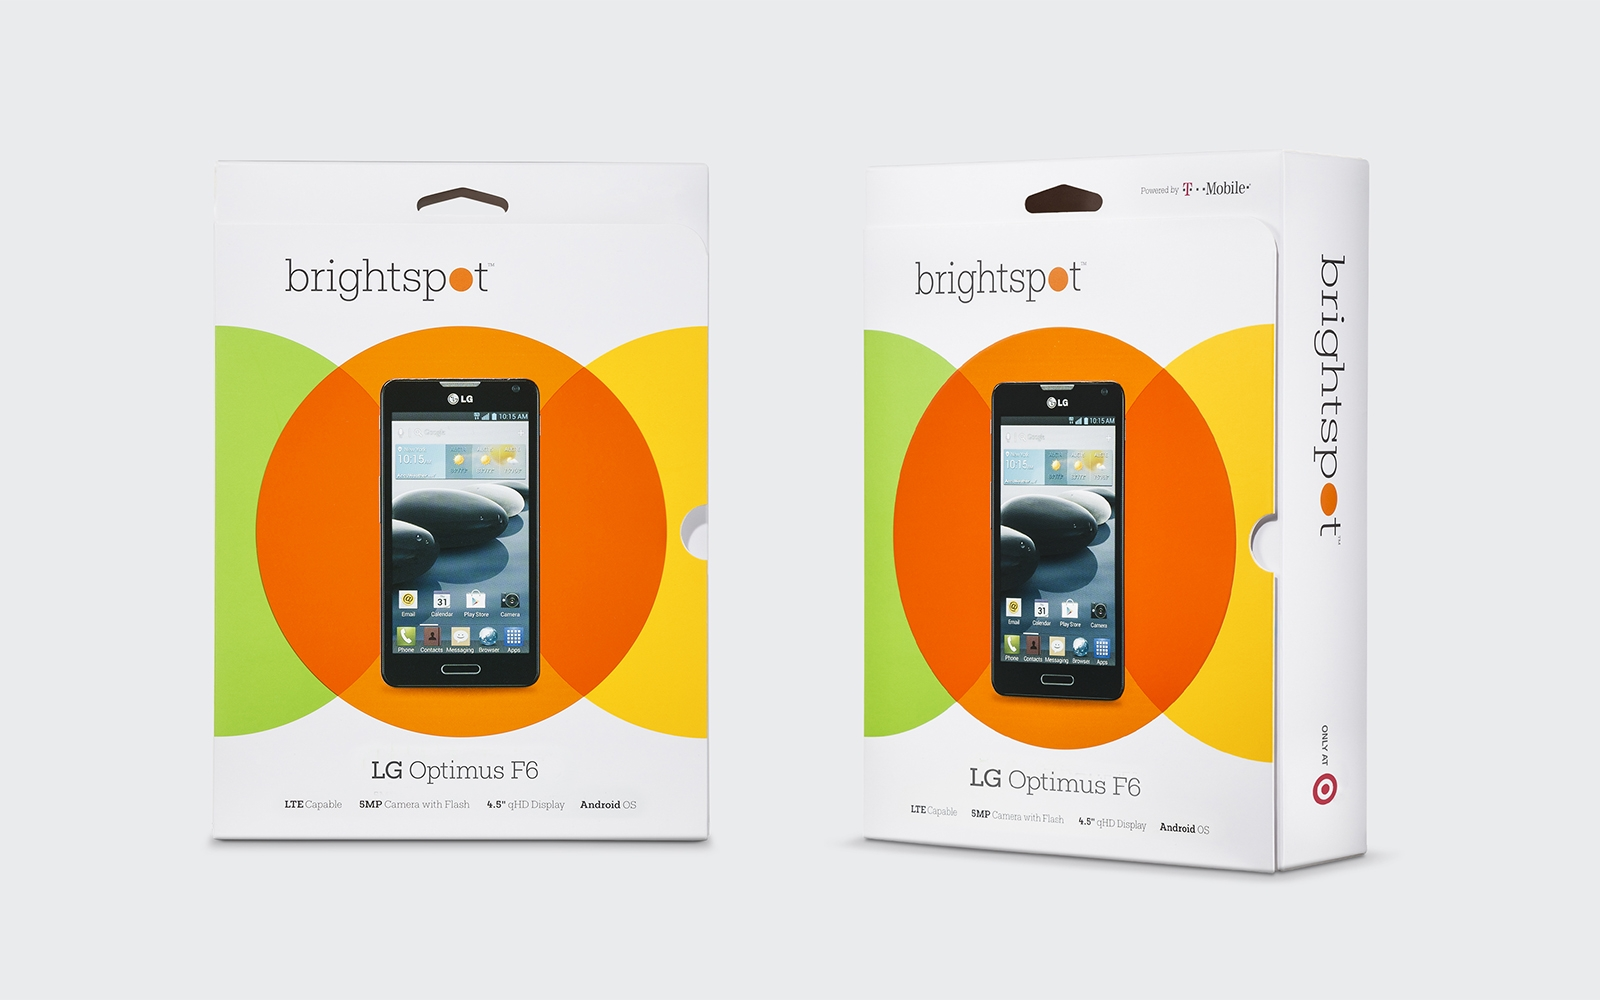 Brightspot logo and packaging design for Target and their new line of phones